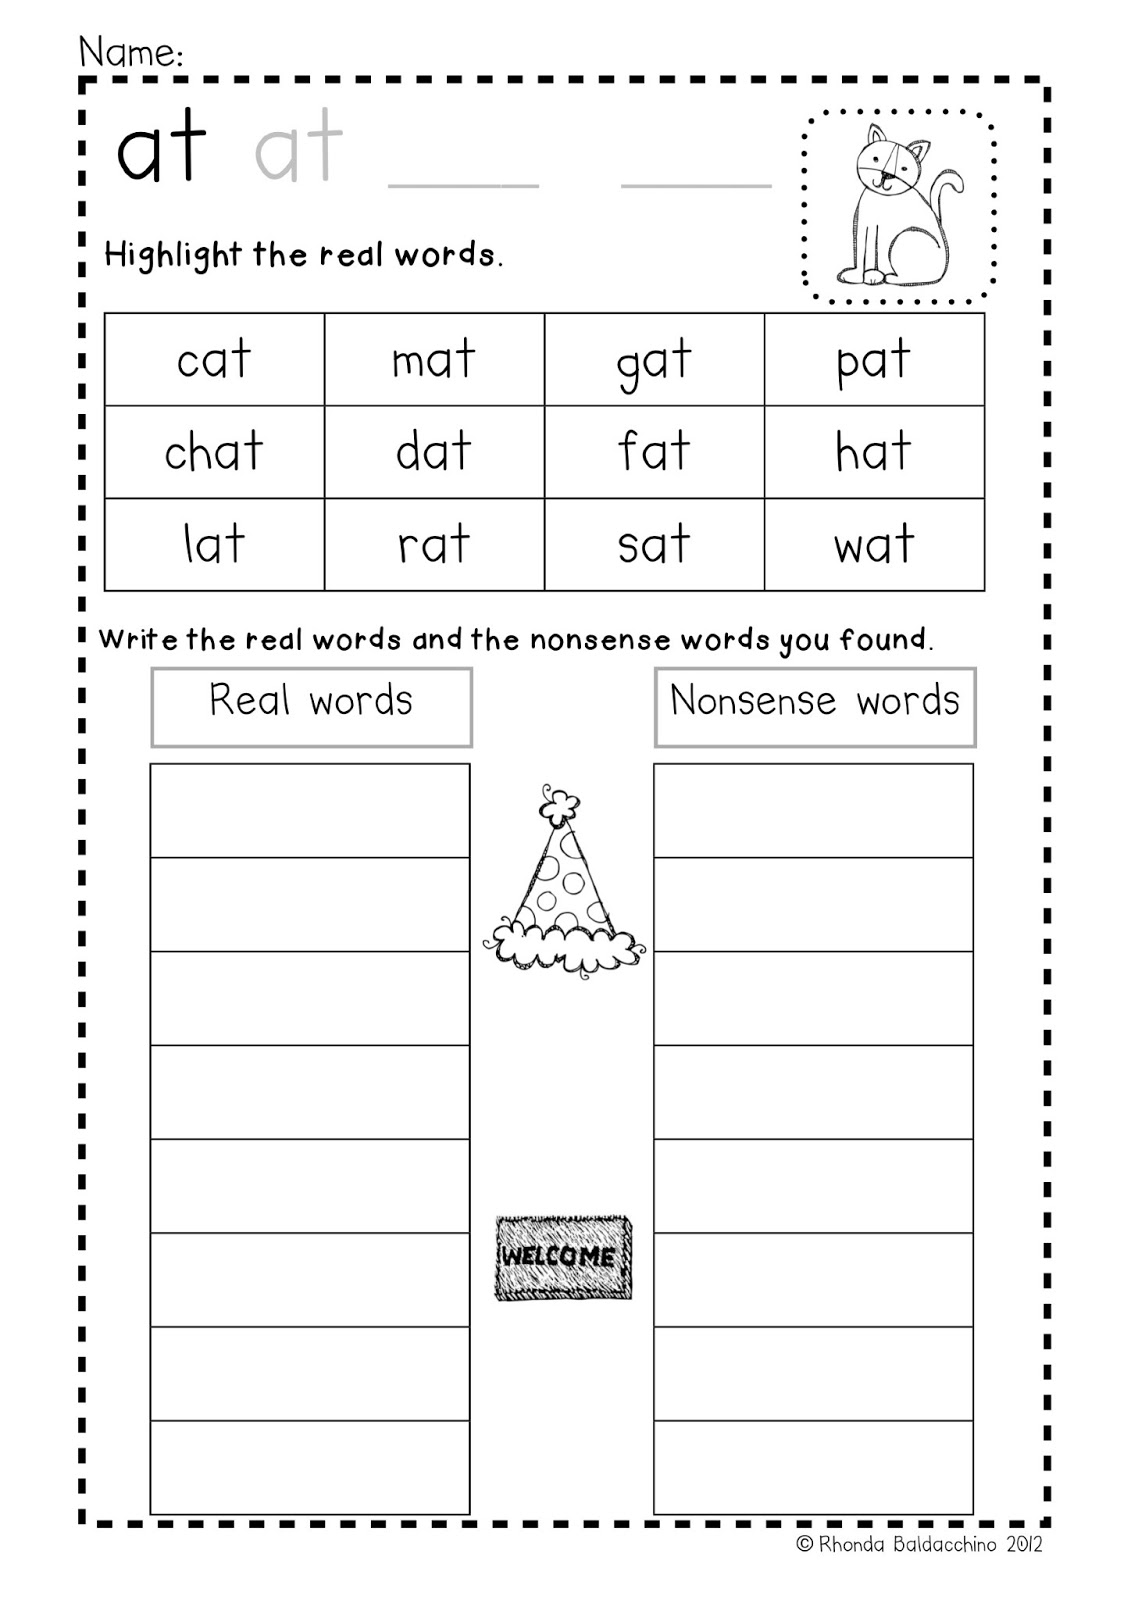 worksheet Kindergarten Cvc Words Worksheets cvc worksheet new 380 writing worksheets words little ones that the stretching activity gets a out your is this good